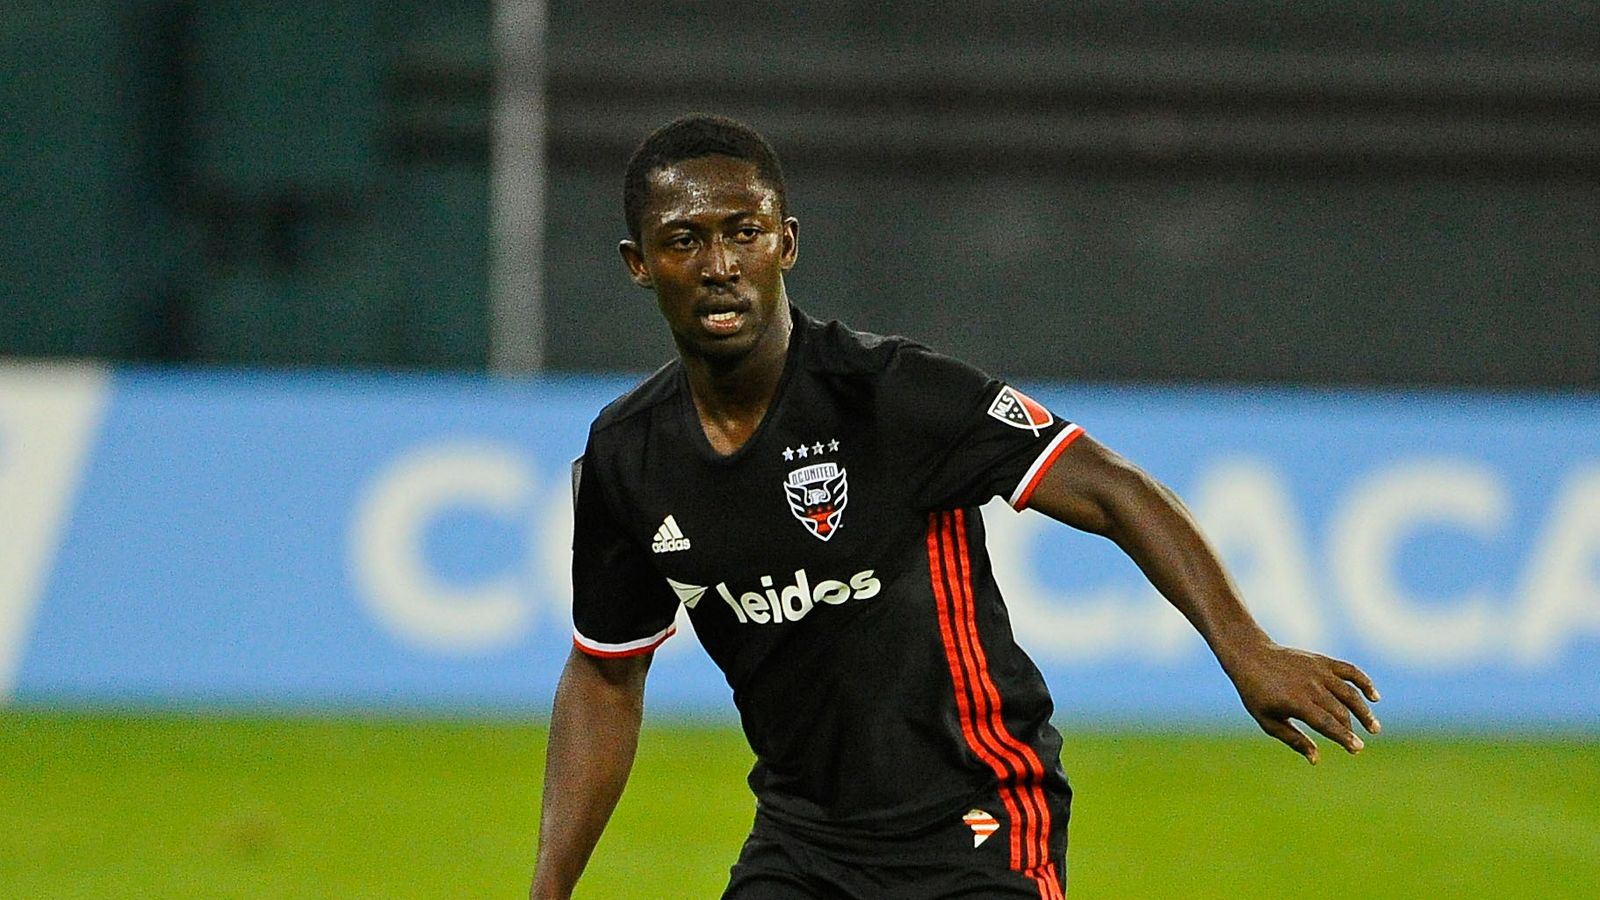 Ghanaian Patrick Nyarko scores to earn a point for DC United at Chicago Fire